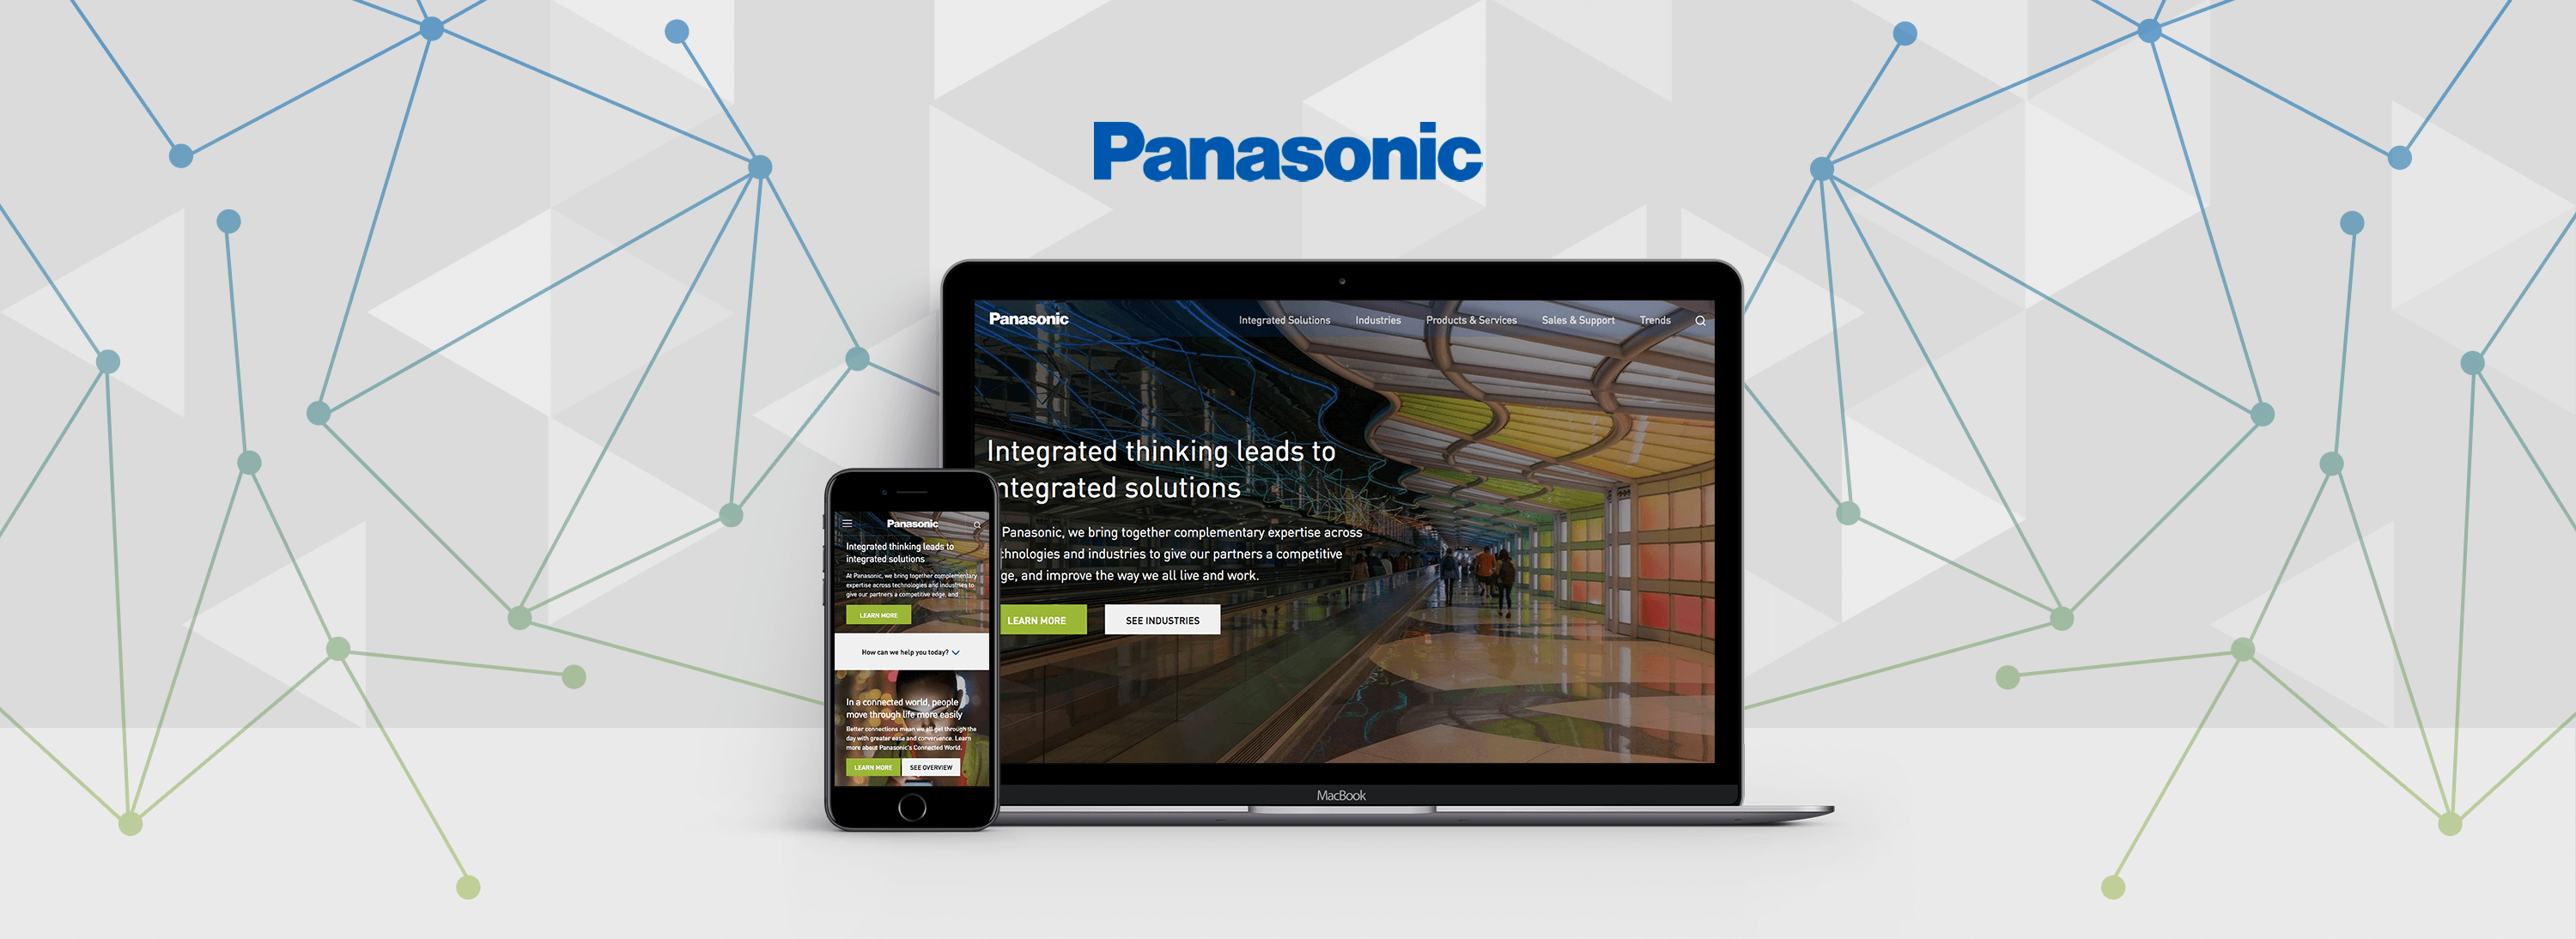 Header of Panasonic for an Acquia webinar blog